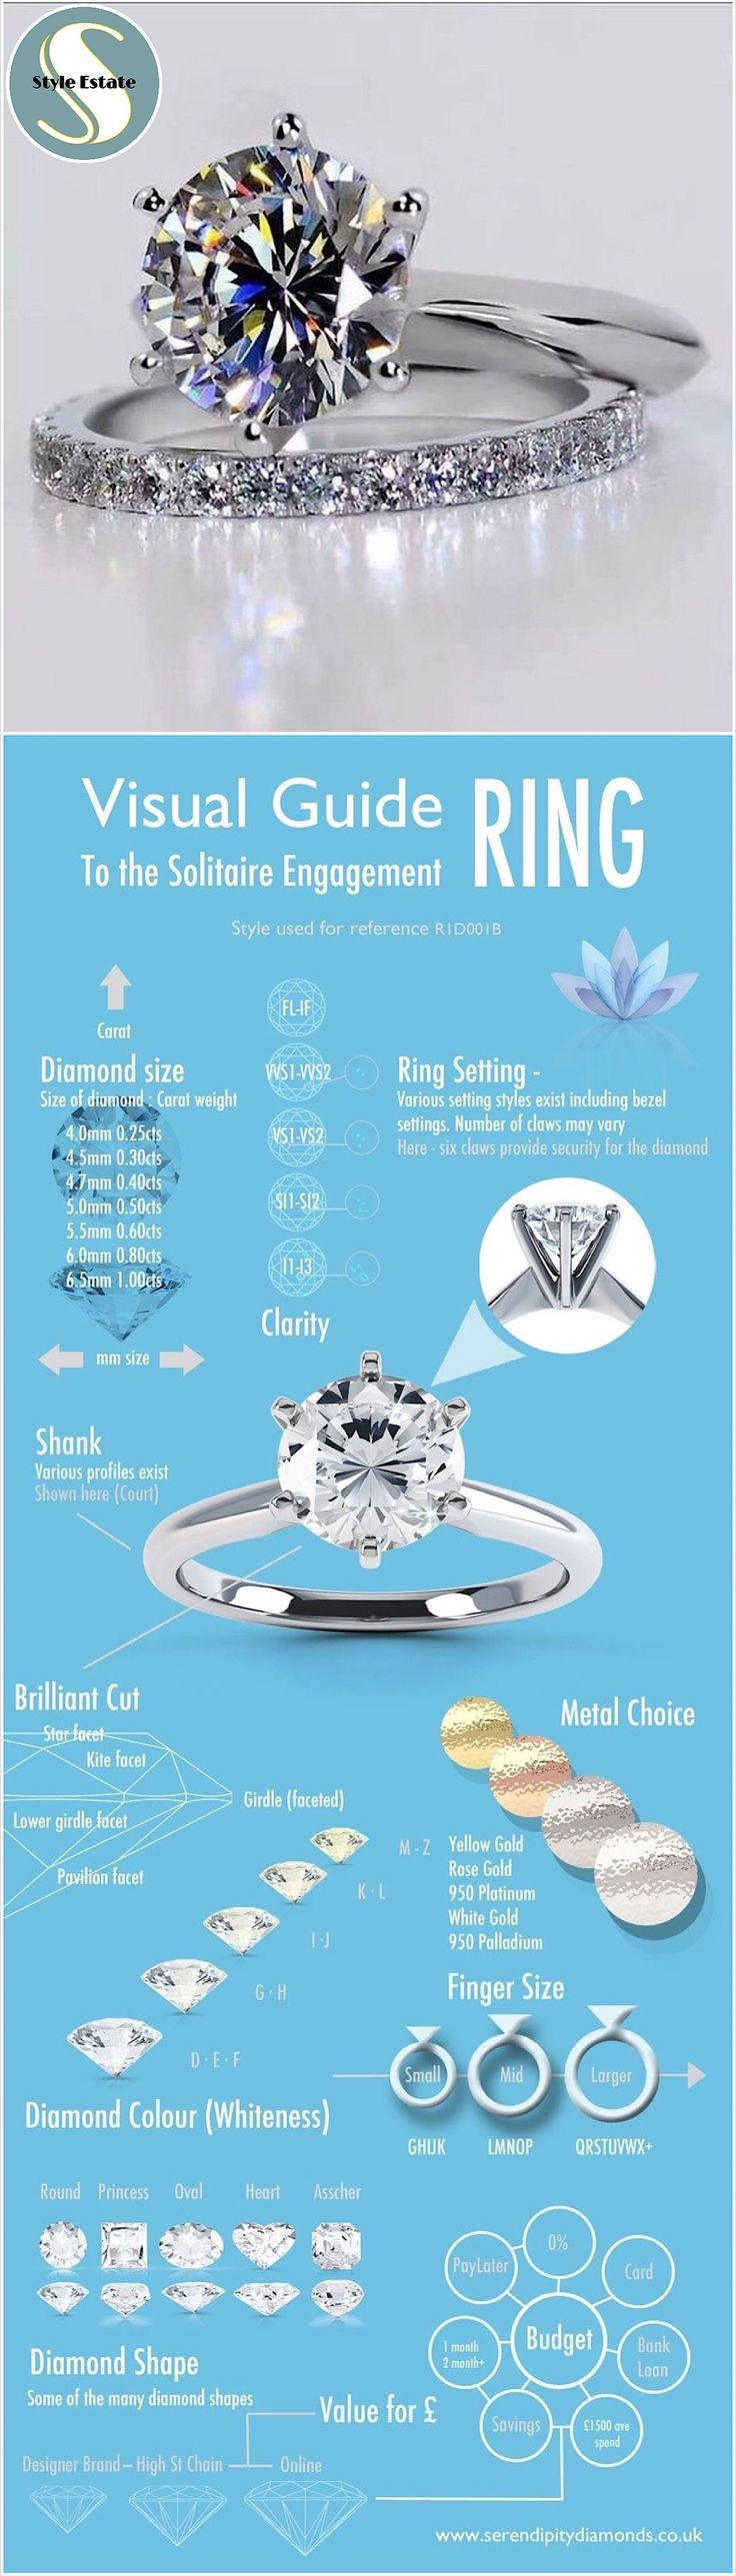 An engagement ringguide Infographic by Serendipity Diamonds  A solitaire ring holds a single gemstone. The diamond solitaire ring represents an iconic engagement ring design, popularised by the products and marketing associated with both De Beers and Tiffany & Co. Many styles exist and solitaire rings vary in appearance depending on the design of – […]